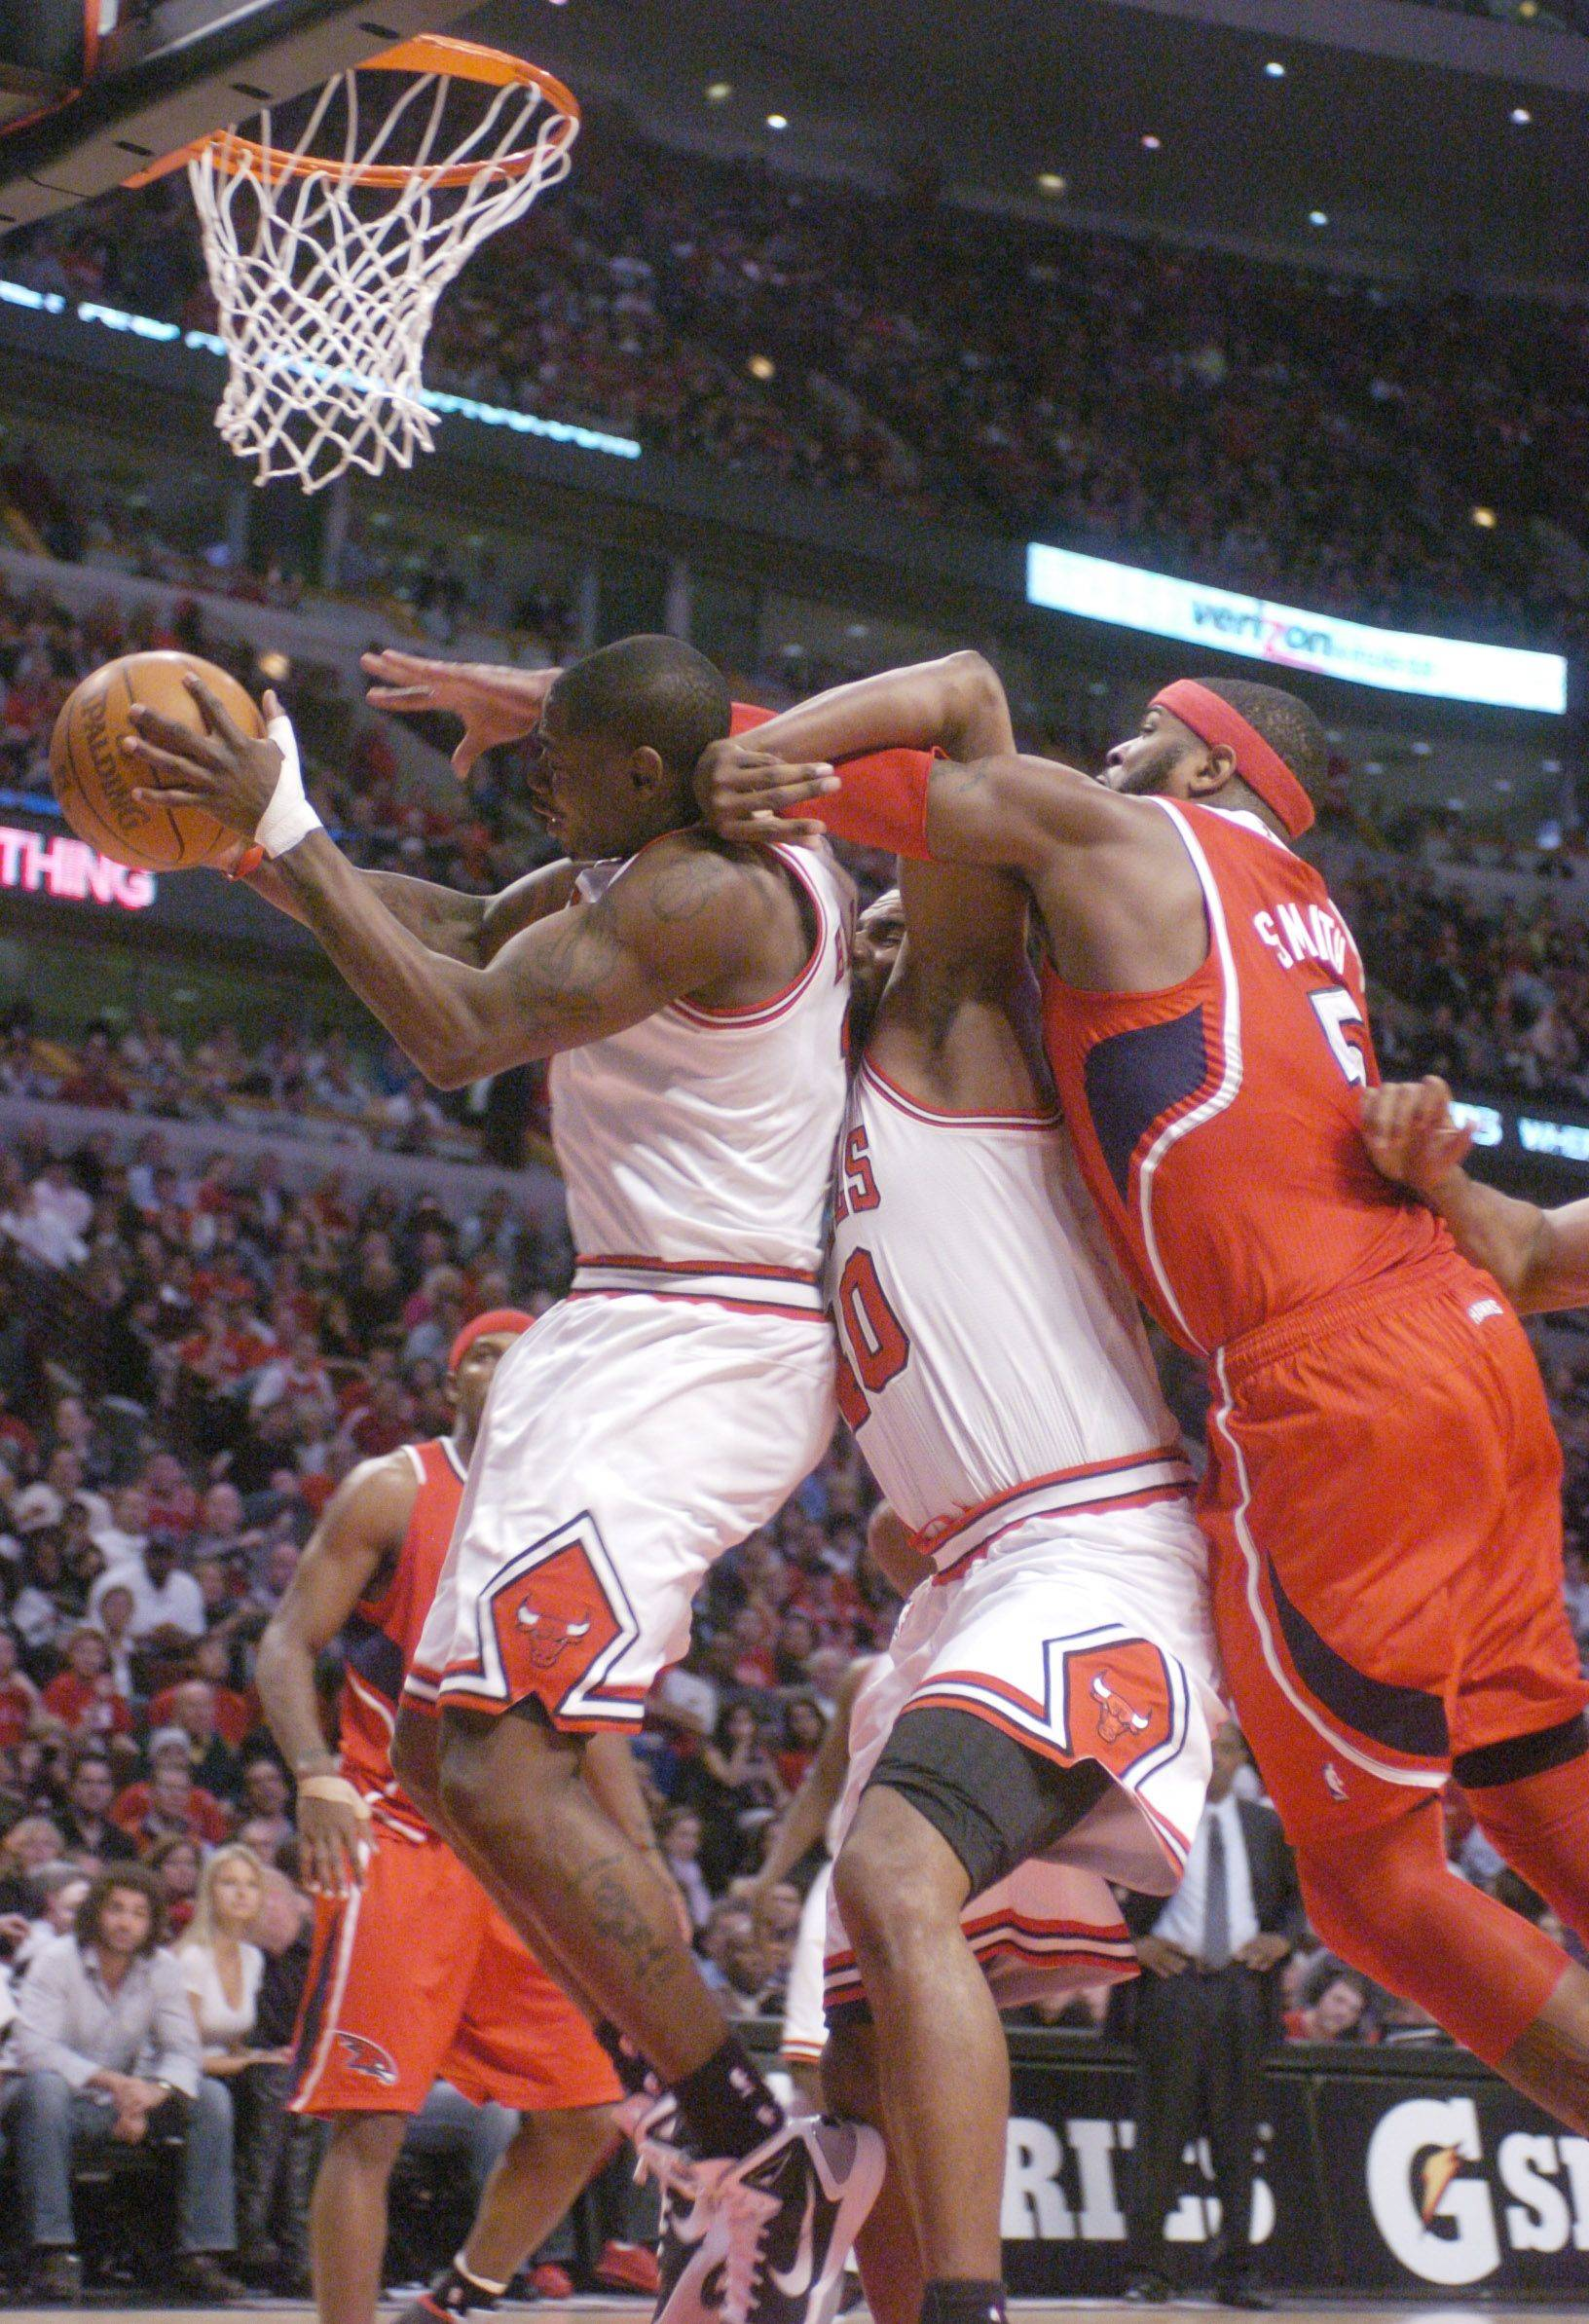 Ronnie Brewer of the Bulls draws a flagrant foul from Atlanta's Josh Smith as Kurt Thomas gets sandwiched on the play at the United Center.